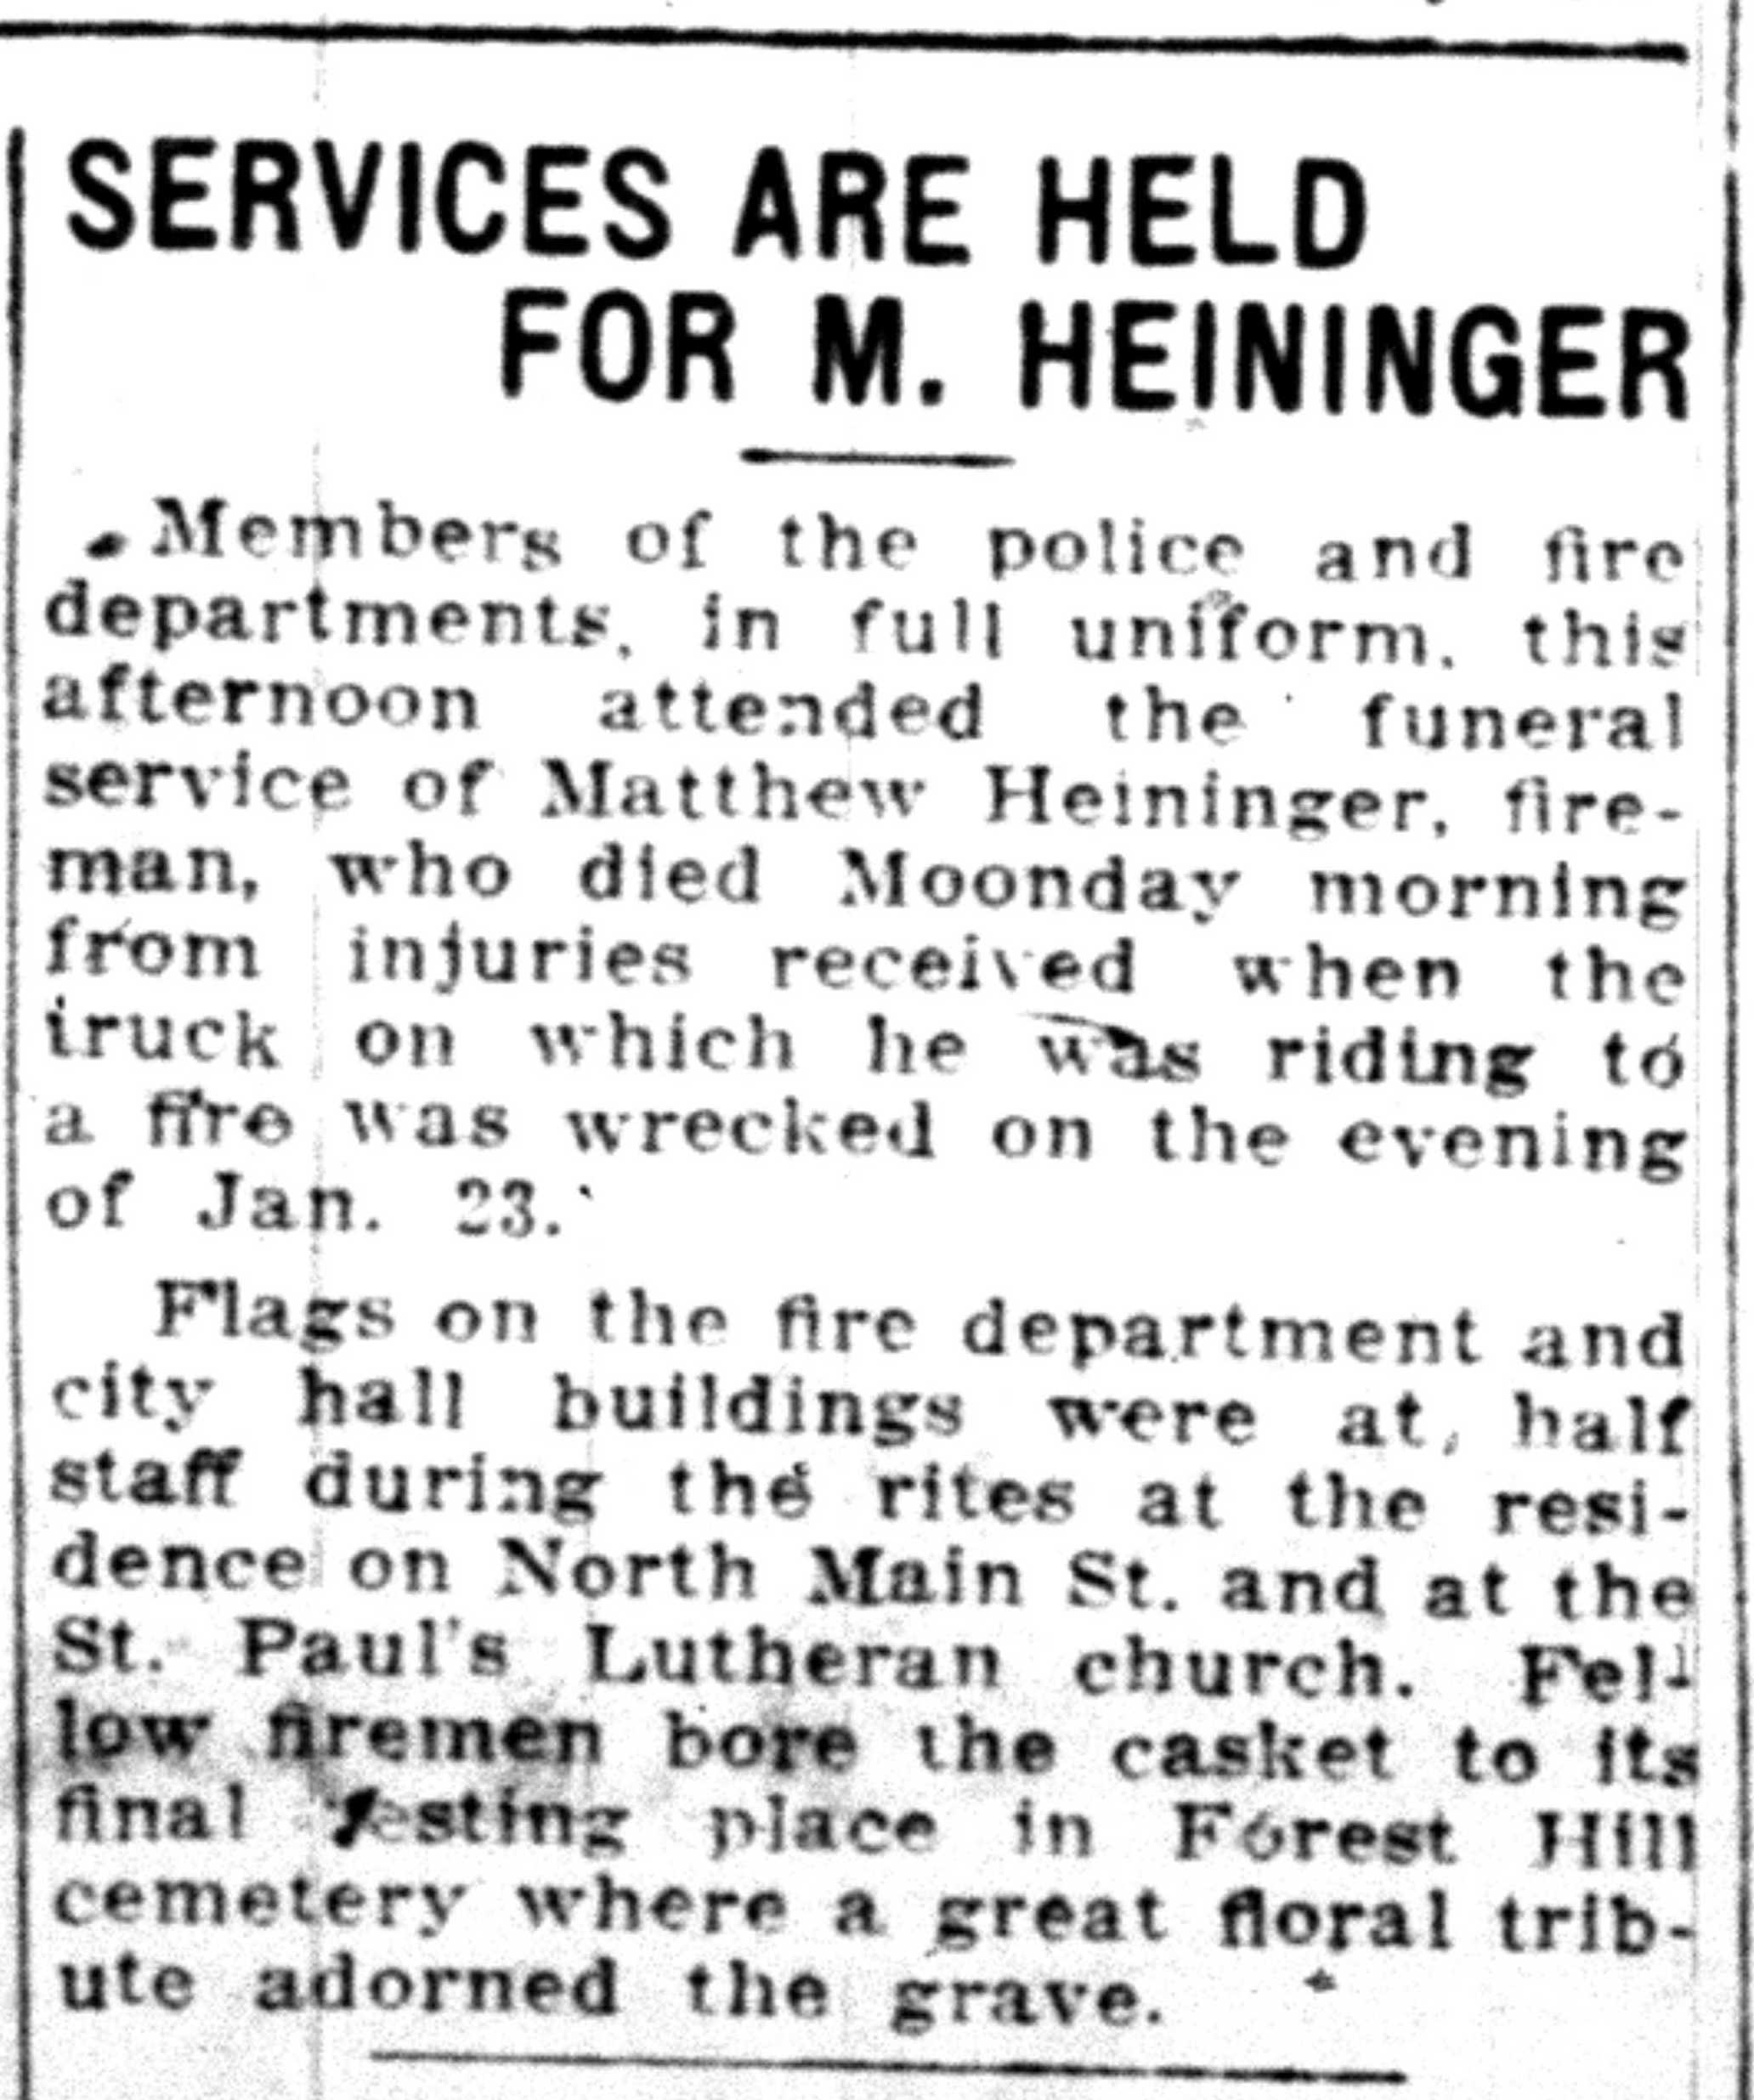 Services Are Held For M. Heininger image